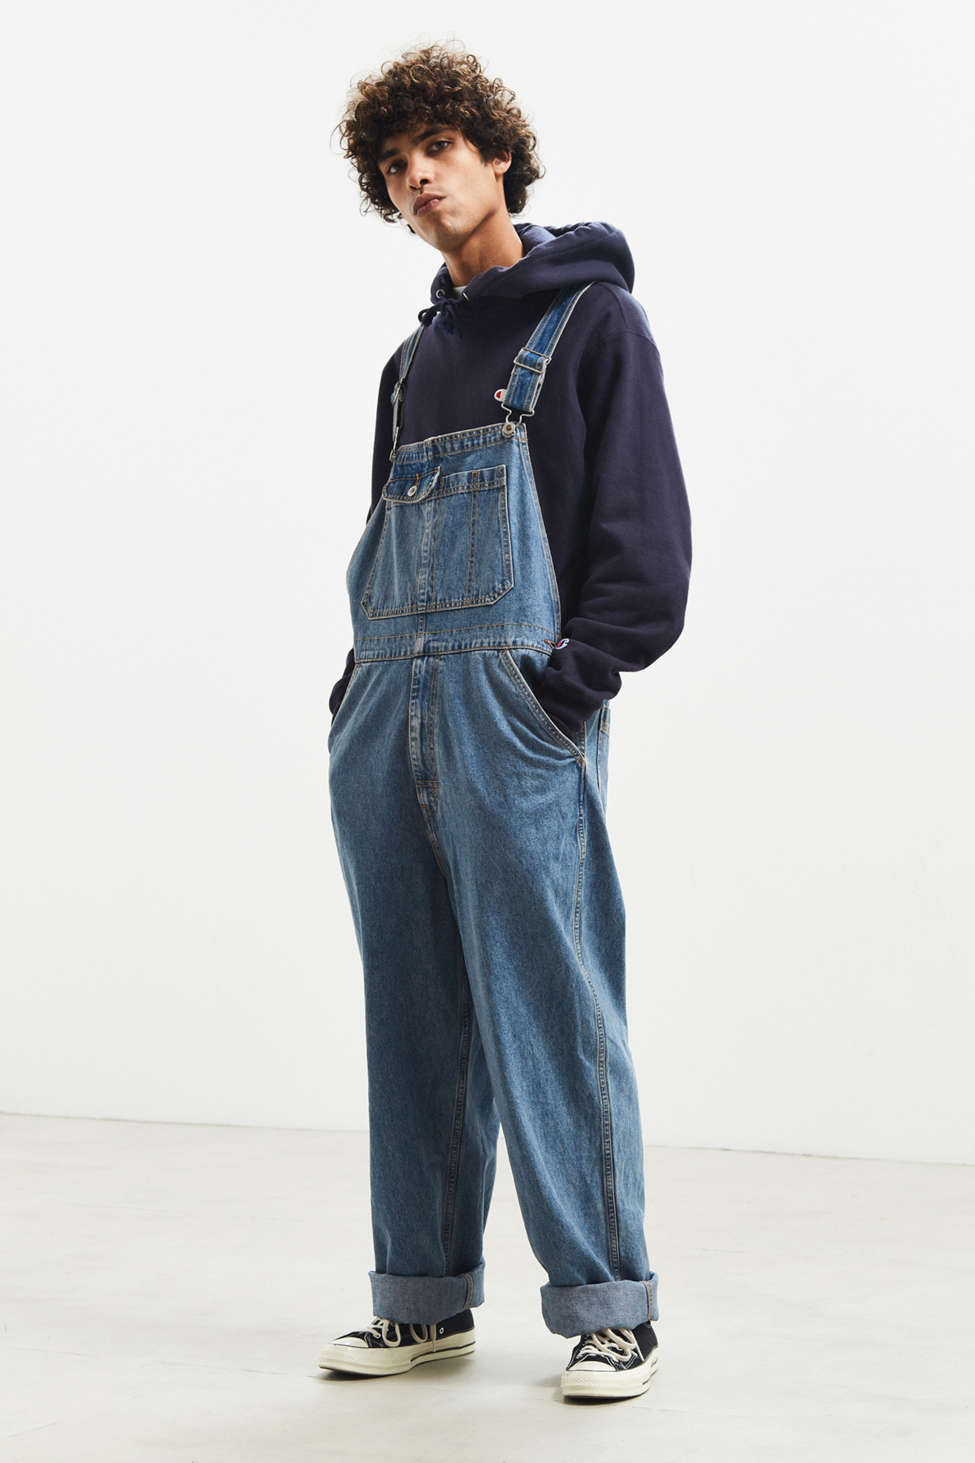 This Levi's Premium Mom Overall will stand the test of time. Levi's Women's Plus-Size Overall Jeans, by Levi's. $ - $ $ 48 $ 69 50 Prime. FREE Shipping on eligible orders. Some sizes/colors are Prime eligible. 3 out of 5 stars 3. Product Description.